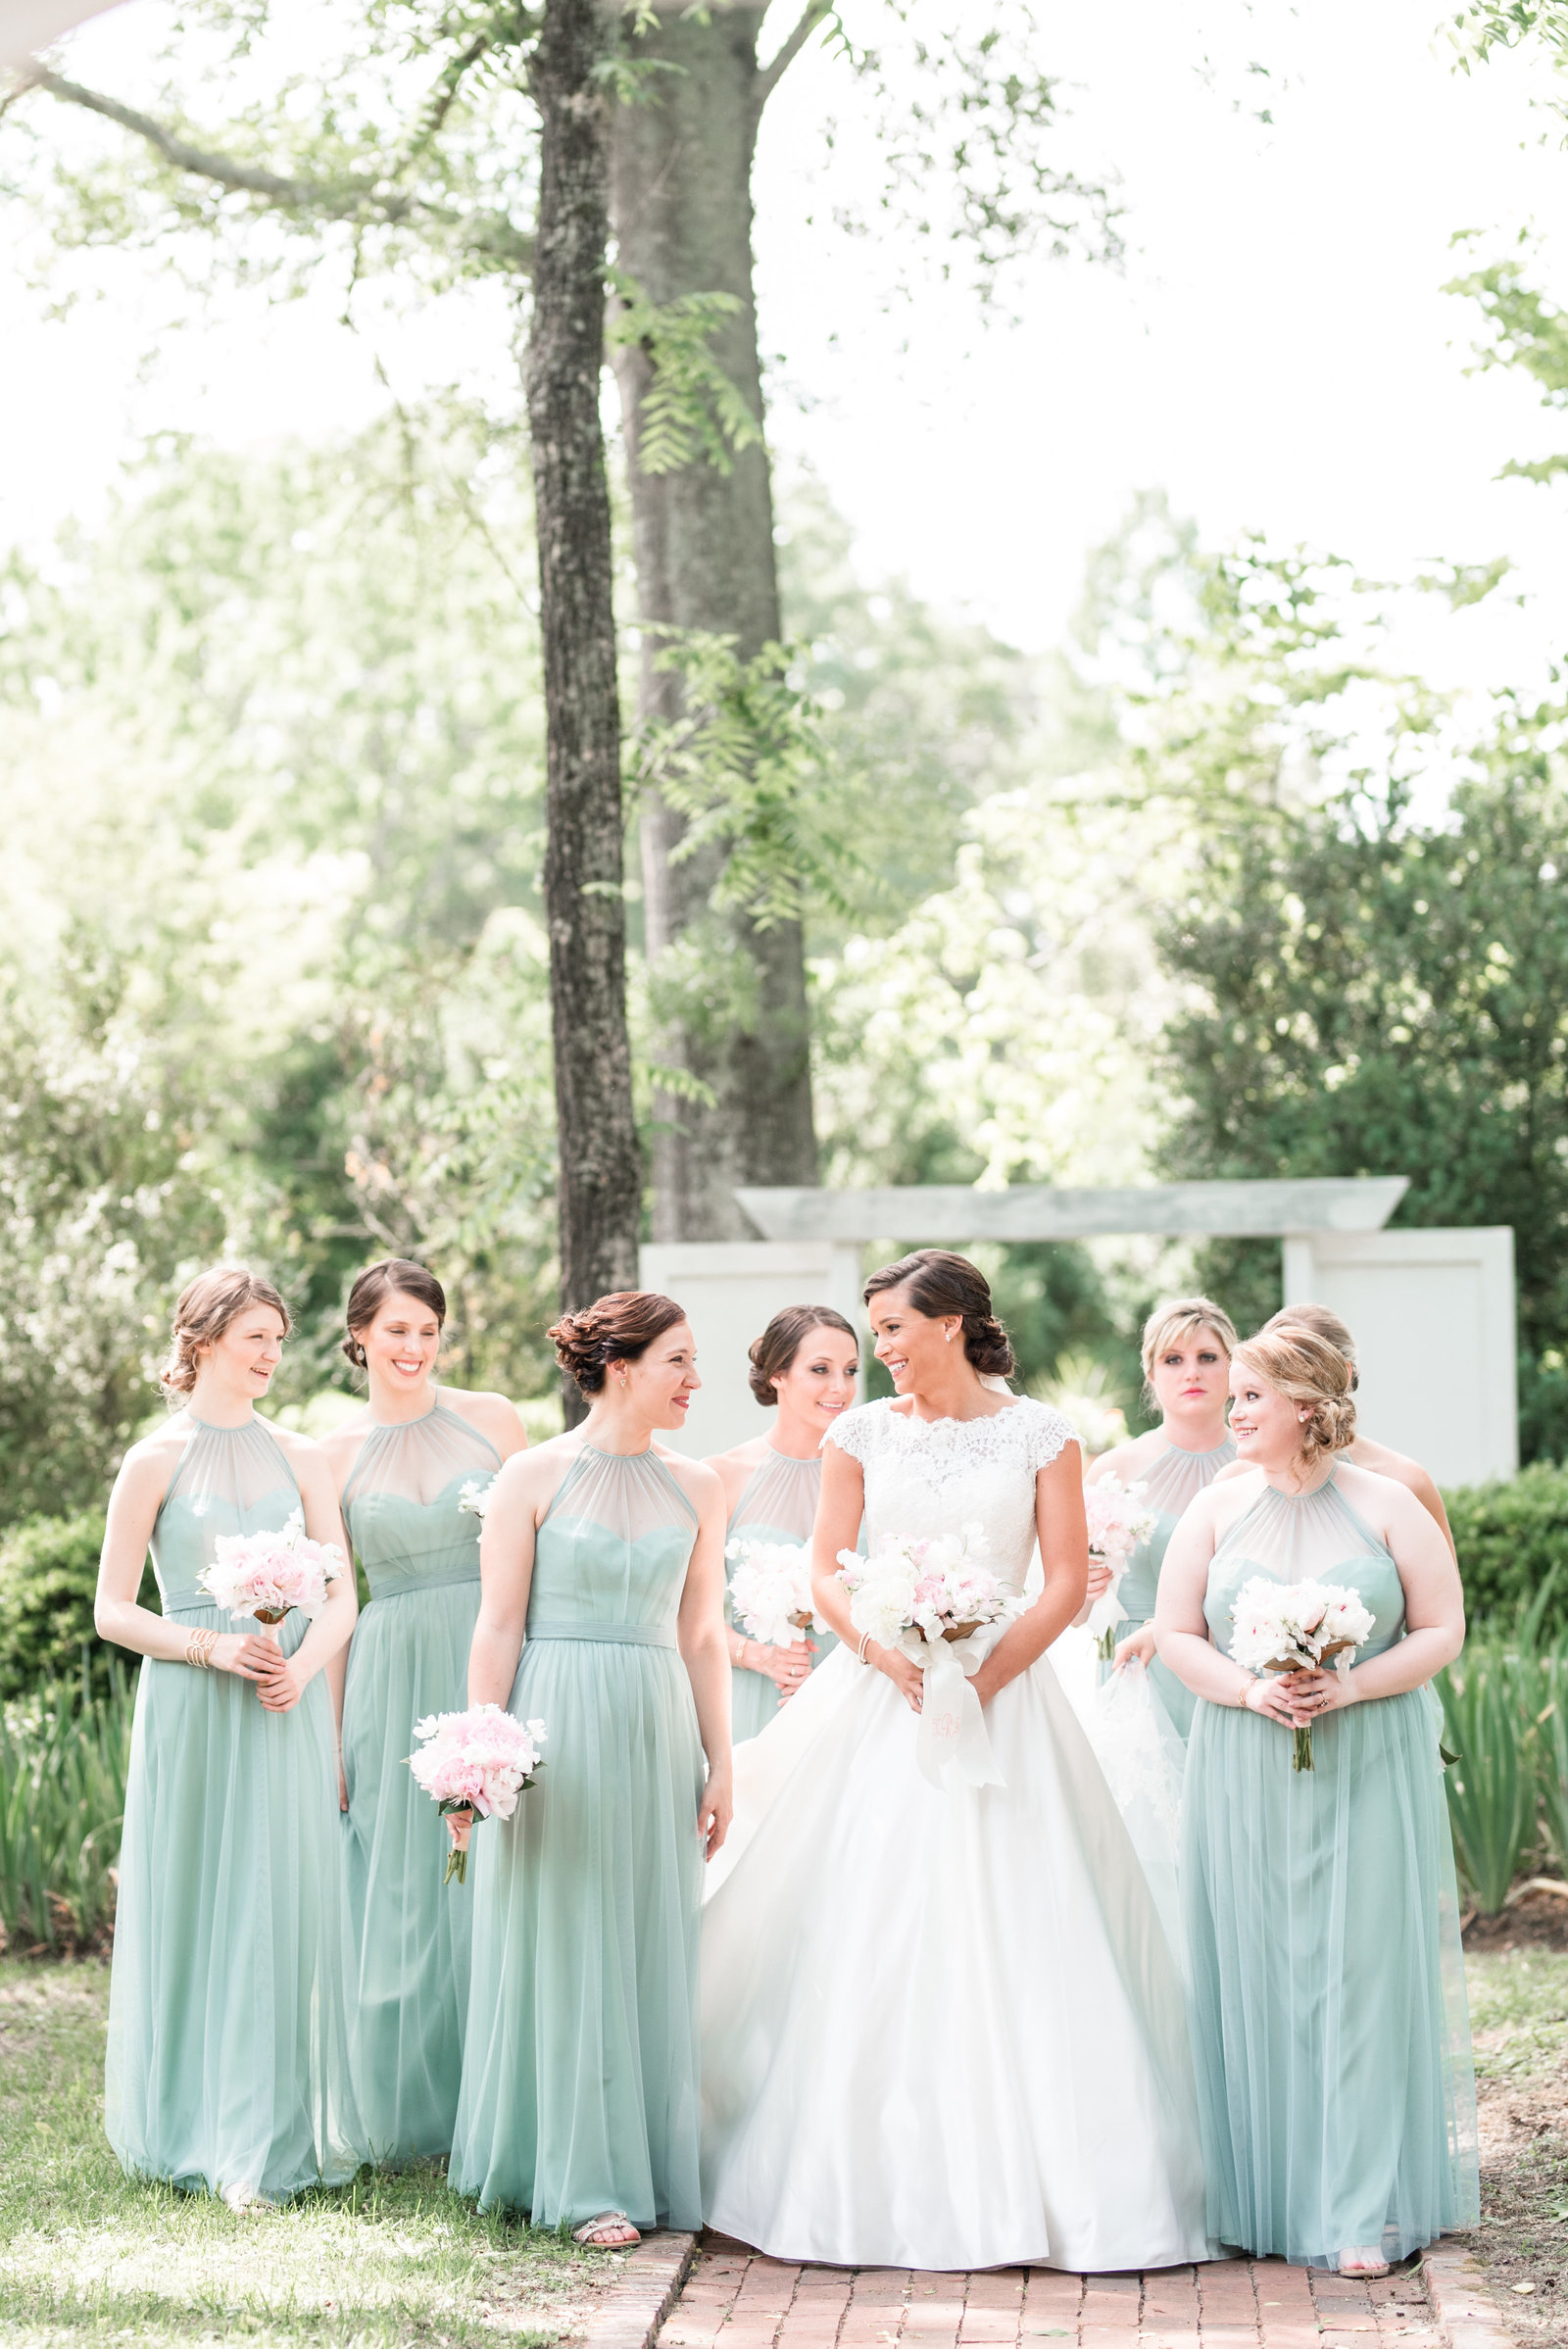 southern-virginia-wedding-sage-bridesmaids-dresses-peony-bouquets-photo073